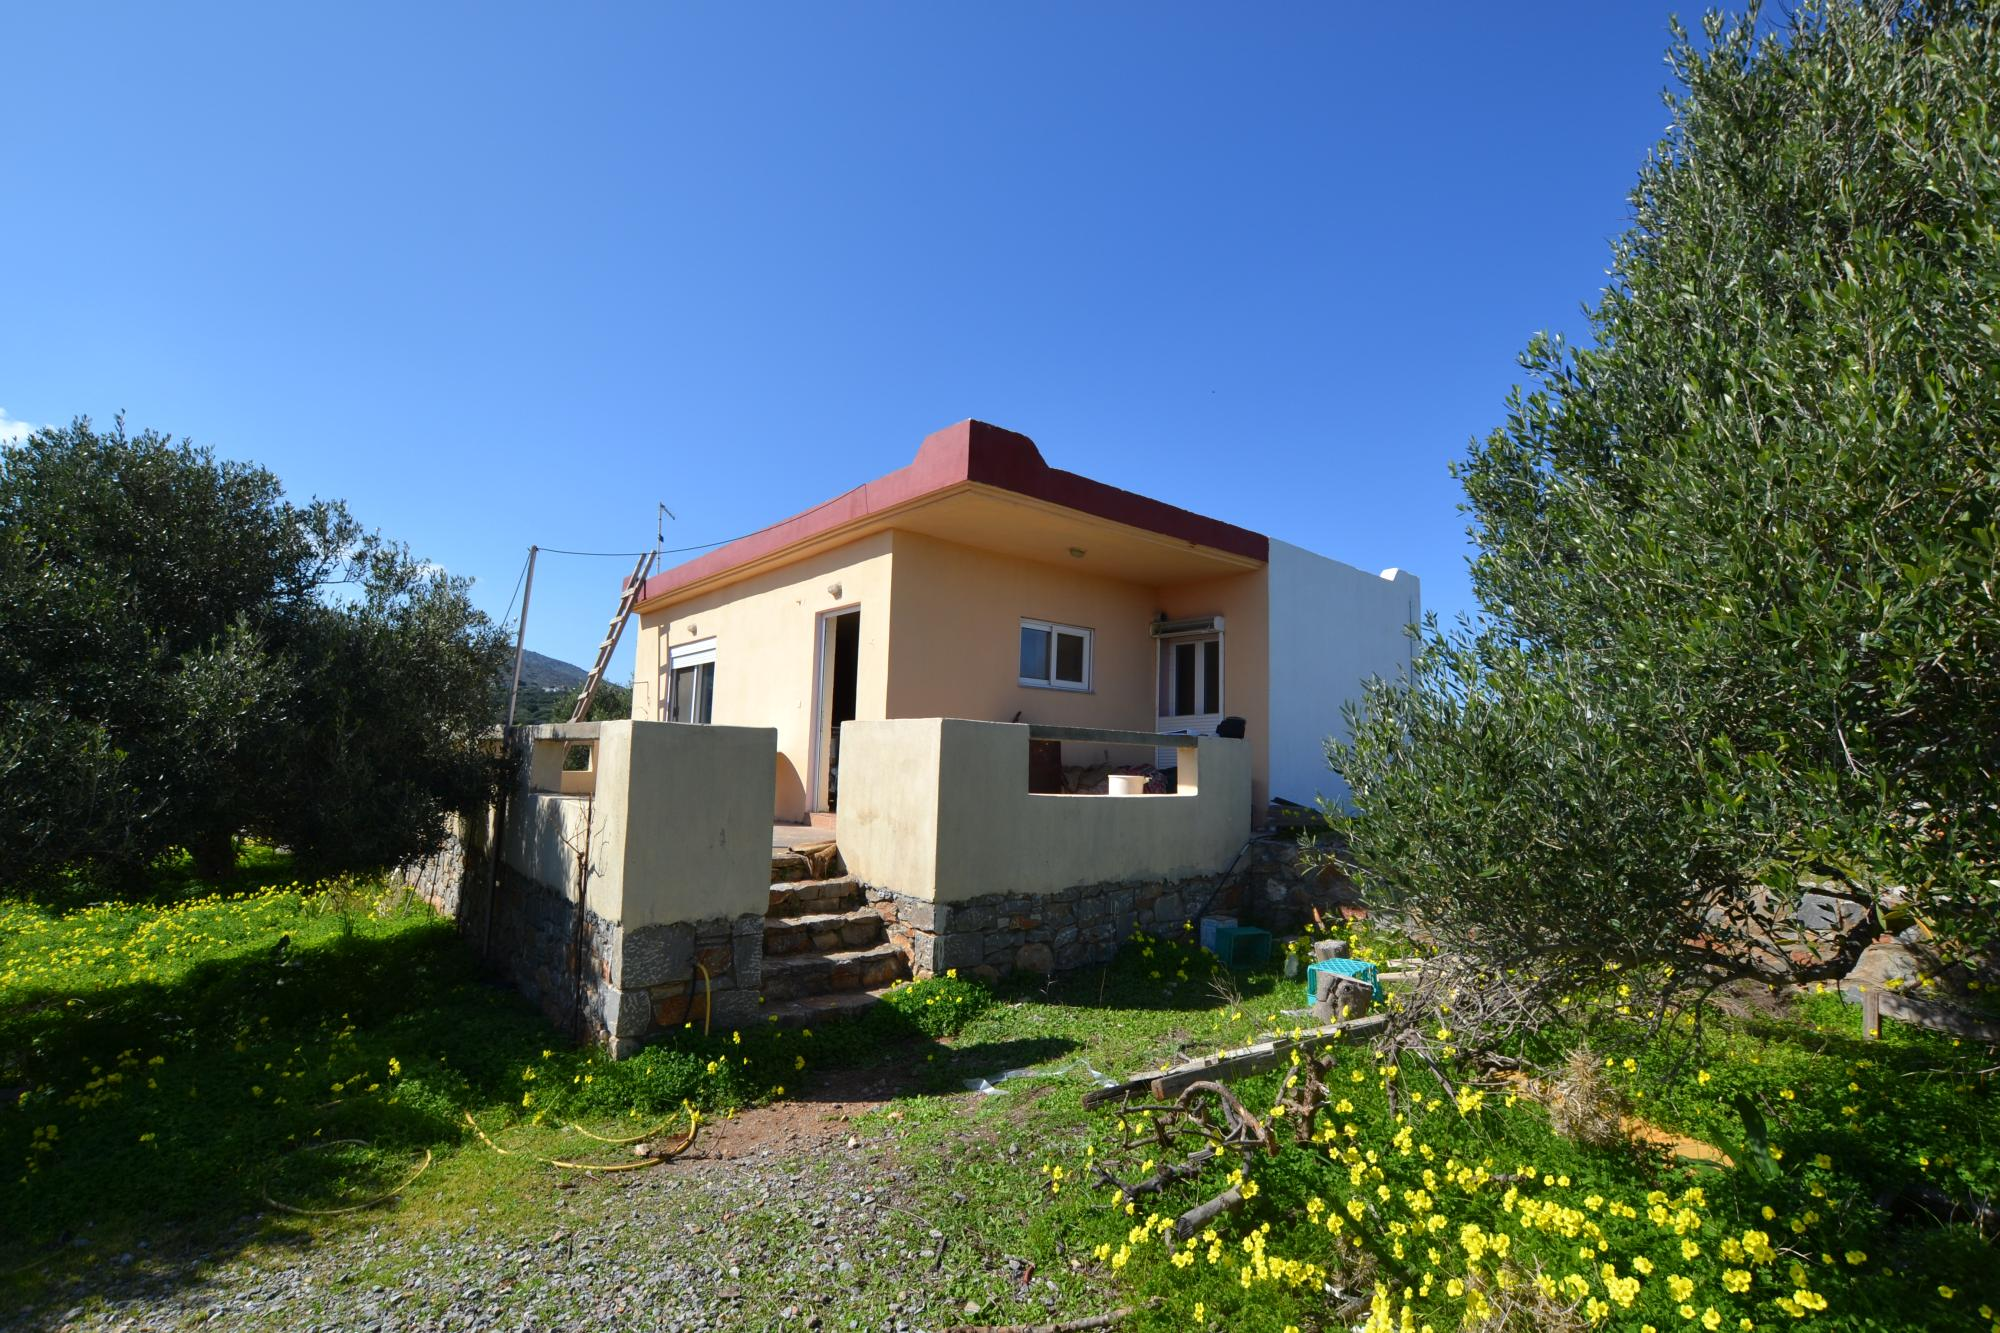 2 bedroom village farm house with big Olive grove. Remote, quiet property.